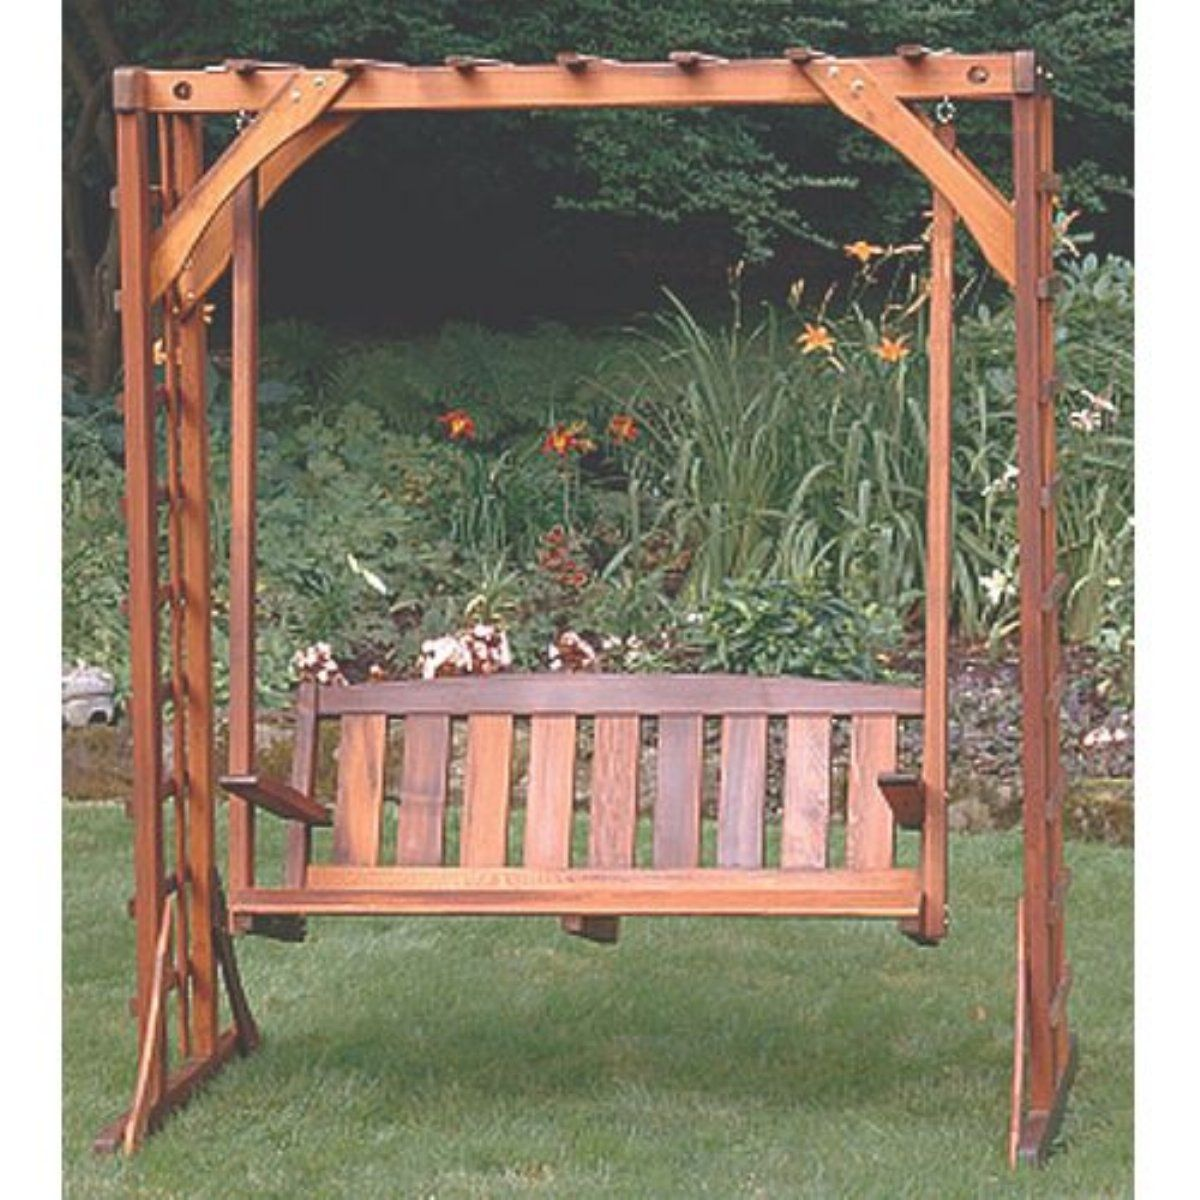 Another simple clean bench design porch swing arbor